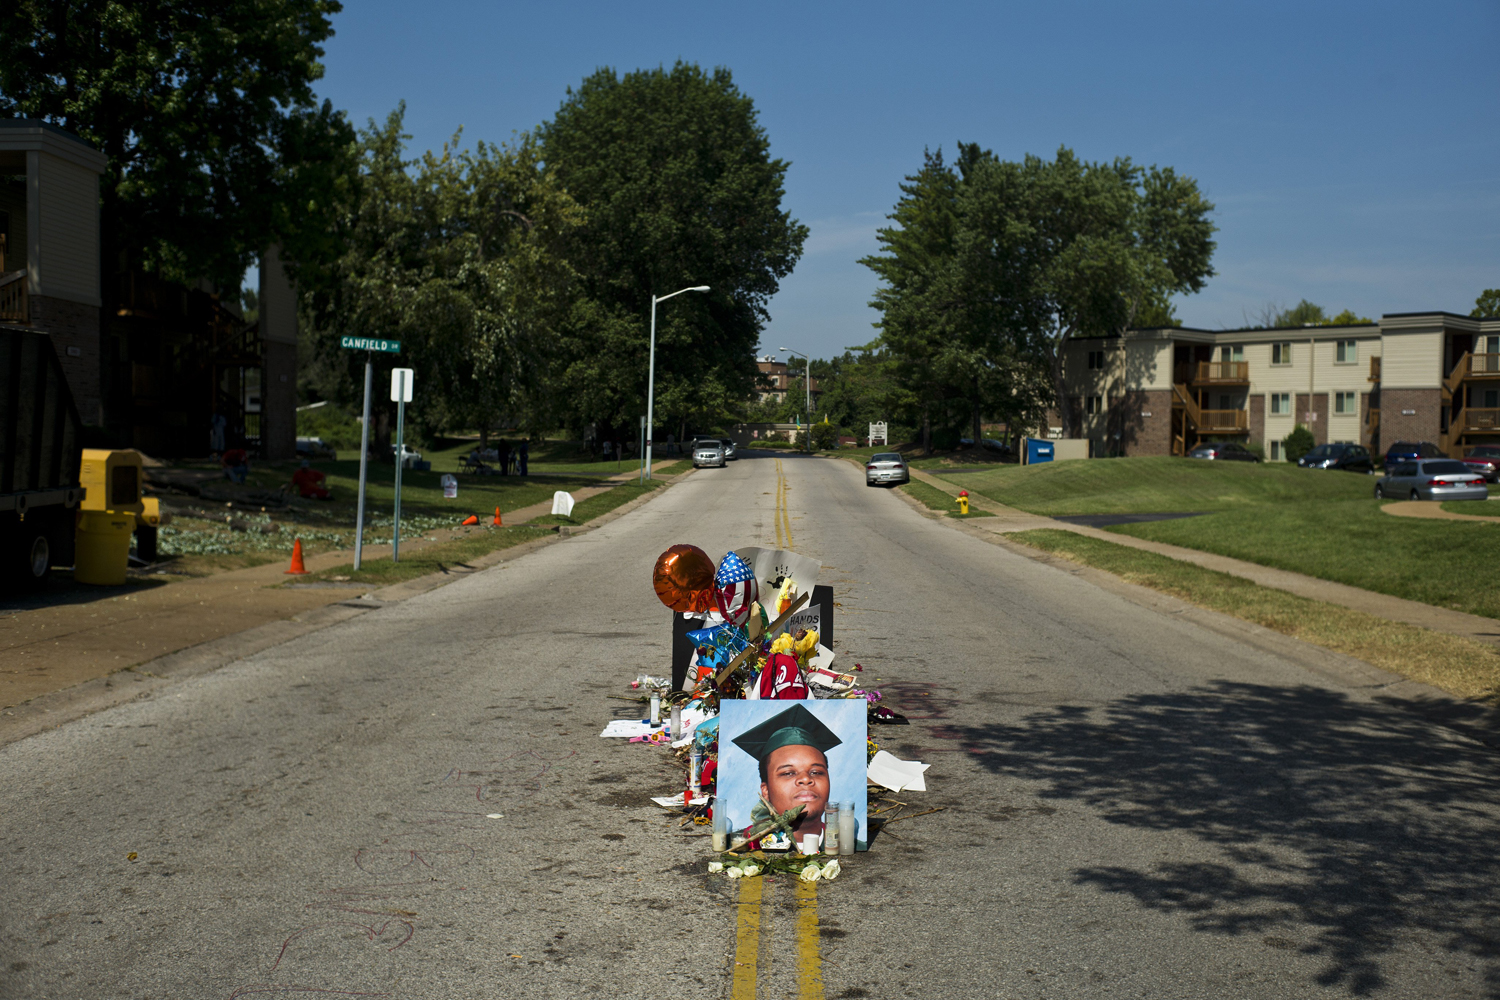 Aug. 26, 2014. A makeshift memorial for Michael Brown, who was fatally shot by a police officer on Aug. 9, on the spot where he was killed in Ferguson, Mo.